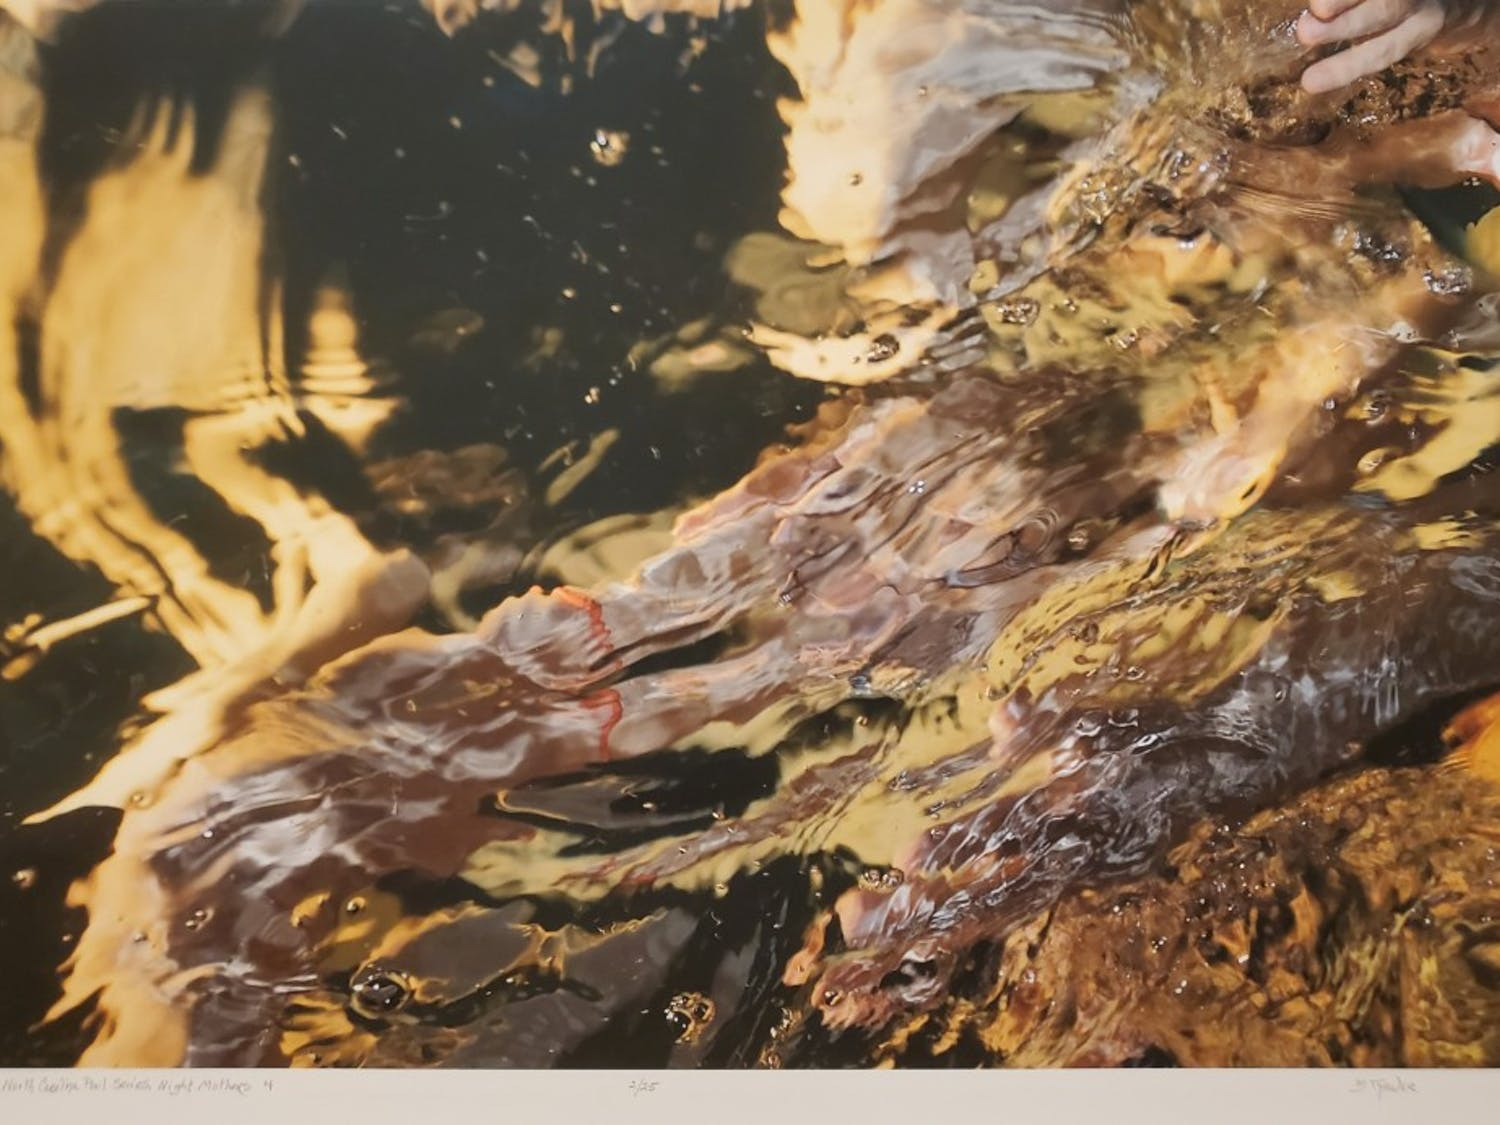 Photo of Barbara Tyroler's work on display at the FRANK Gallery.